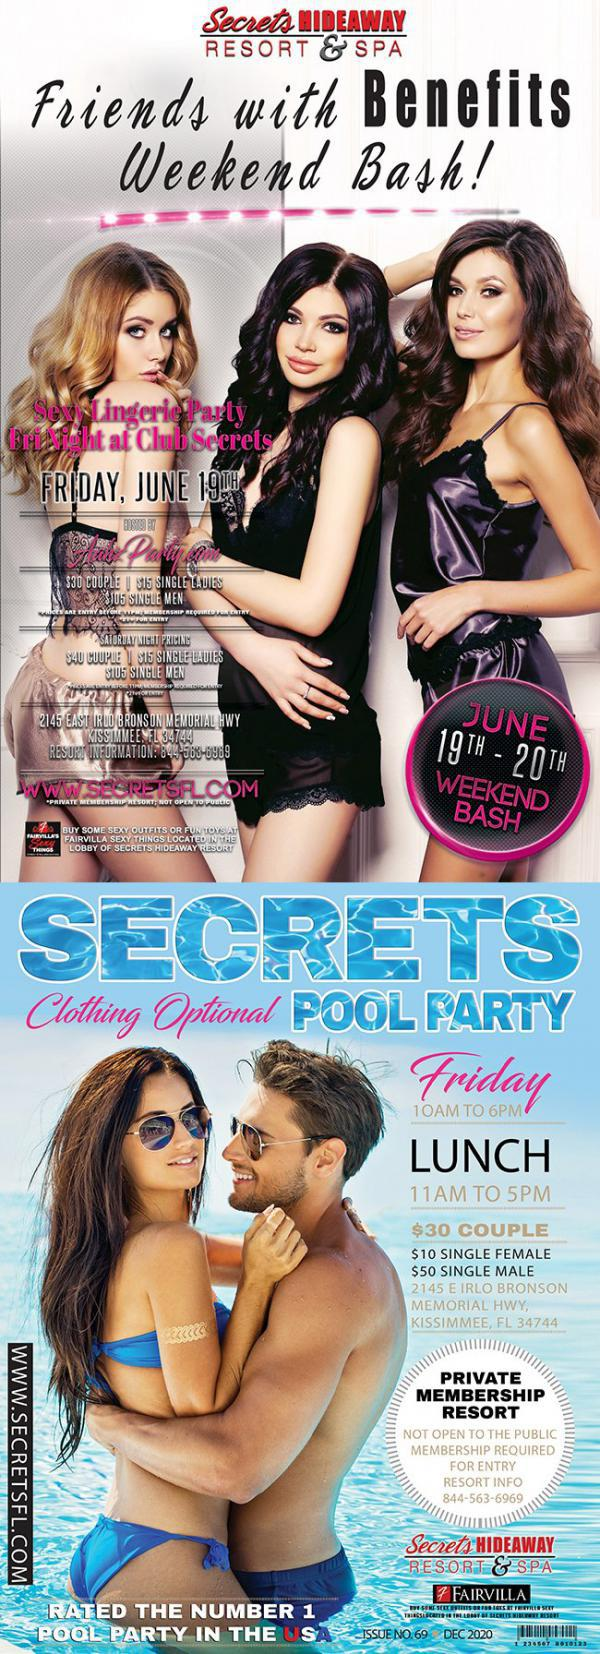 Friday Pool Party AND Sexy Lingerie Friends with Benefits Weekend - Secrets Hideaway-Jun 19, 2020 SDC.com